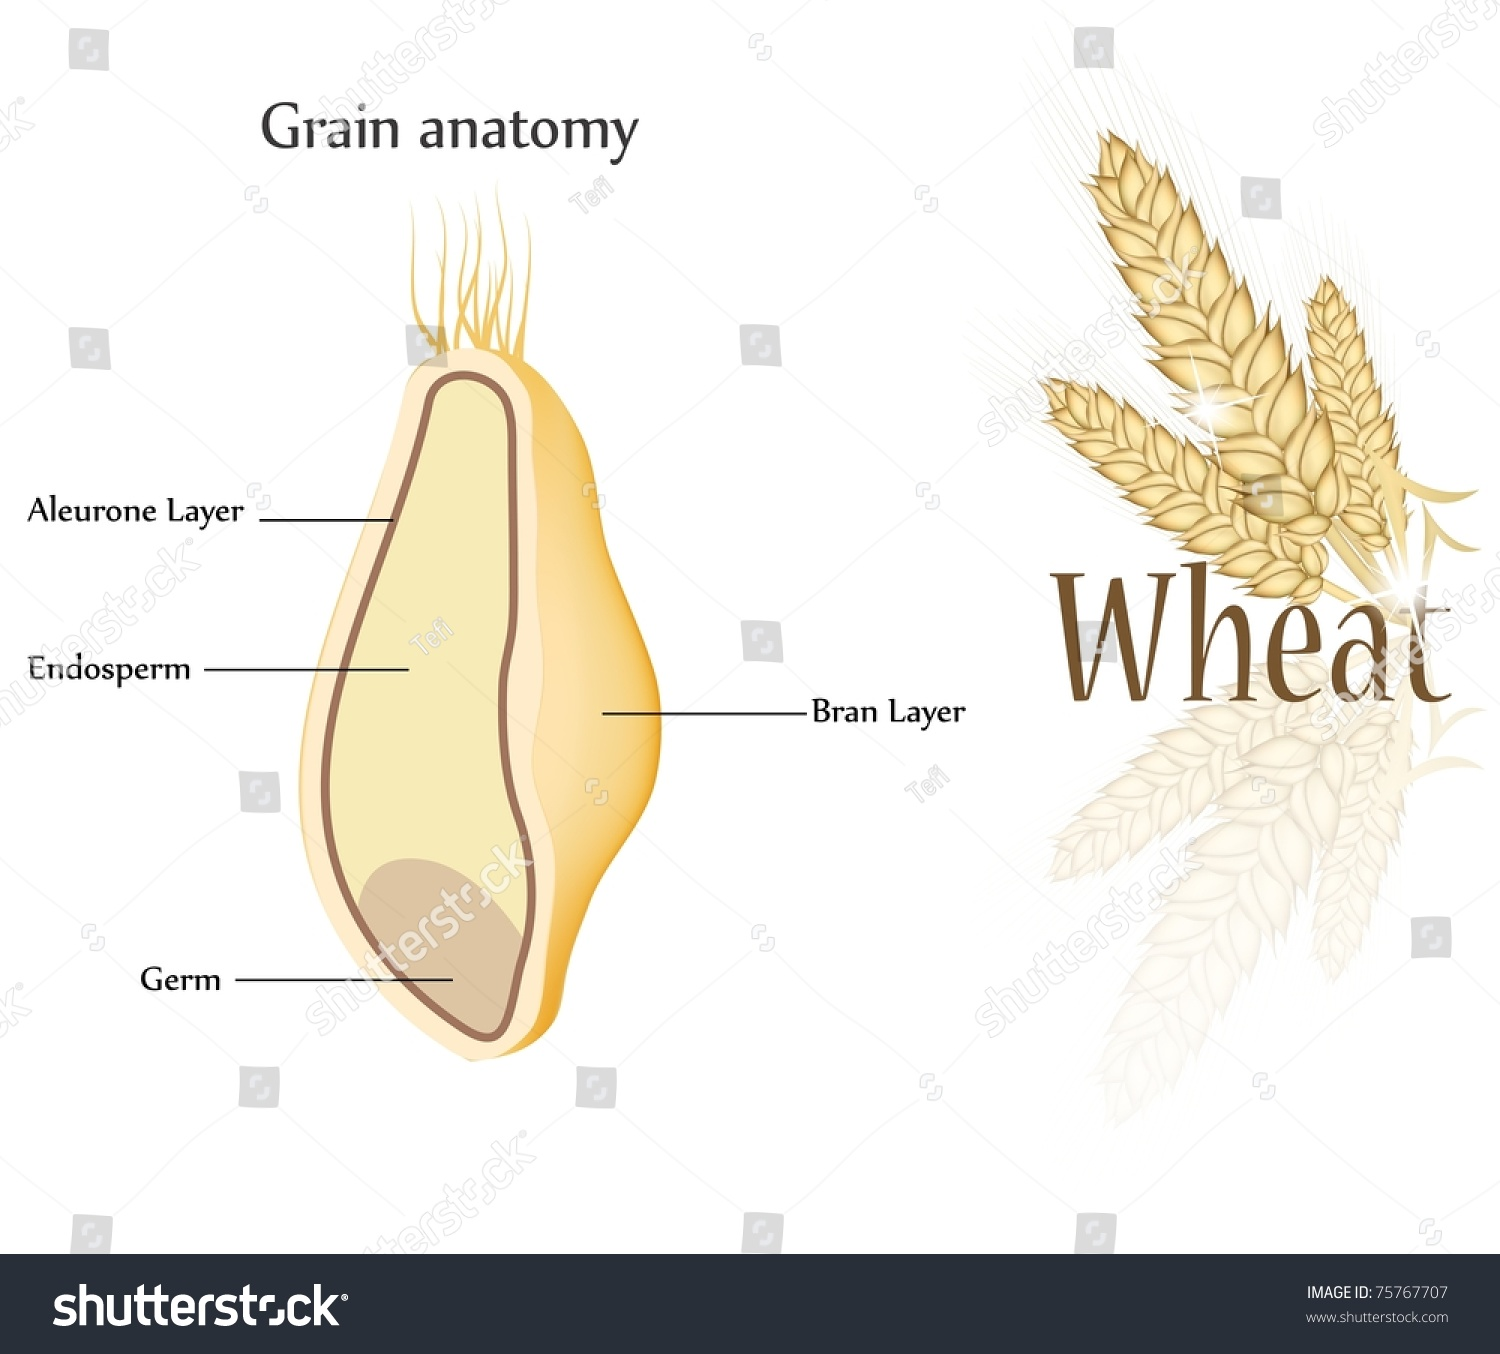 hight resolution of royalty free stock illustration of wheat grain anatomy cross section anatomy of a wheat kernel wheat anatomy diagram